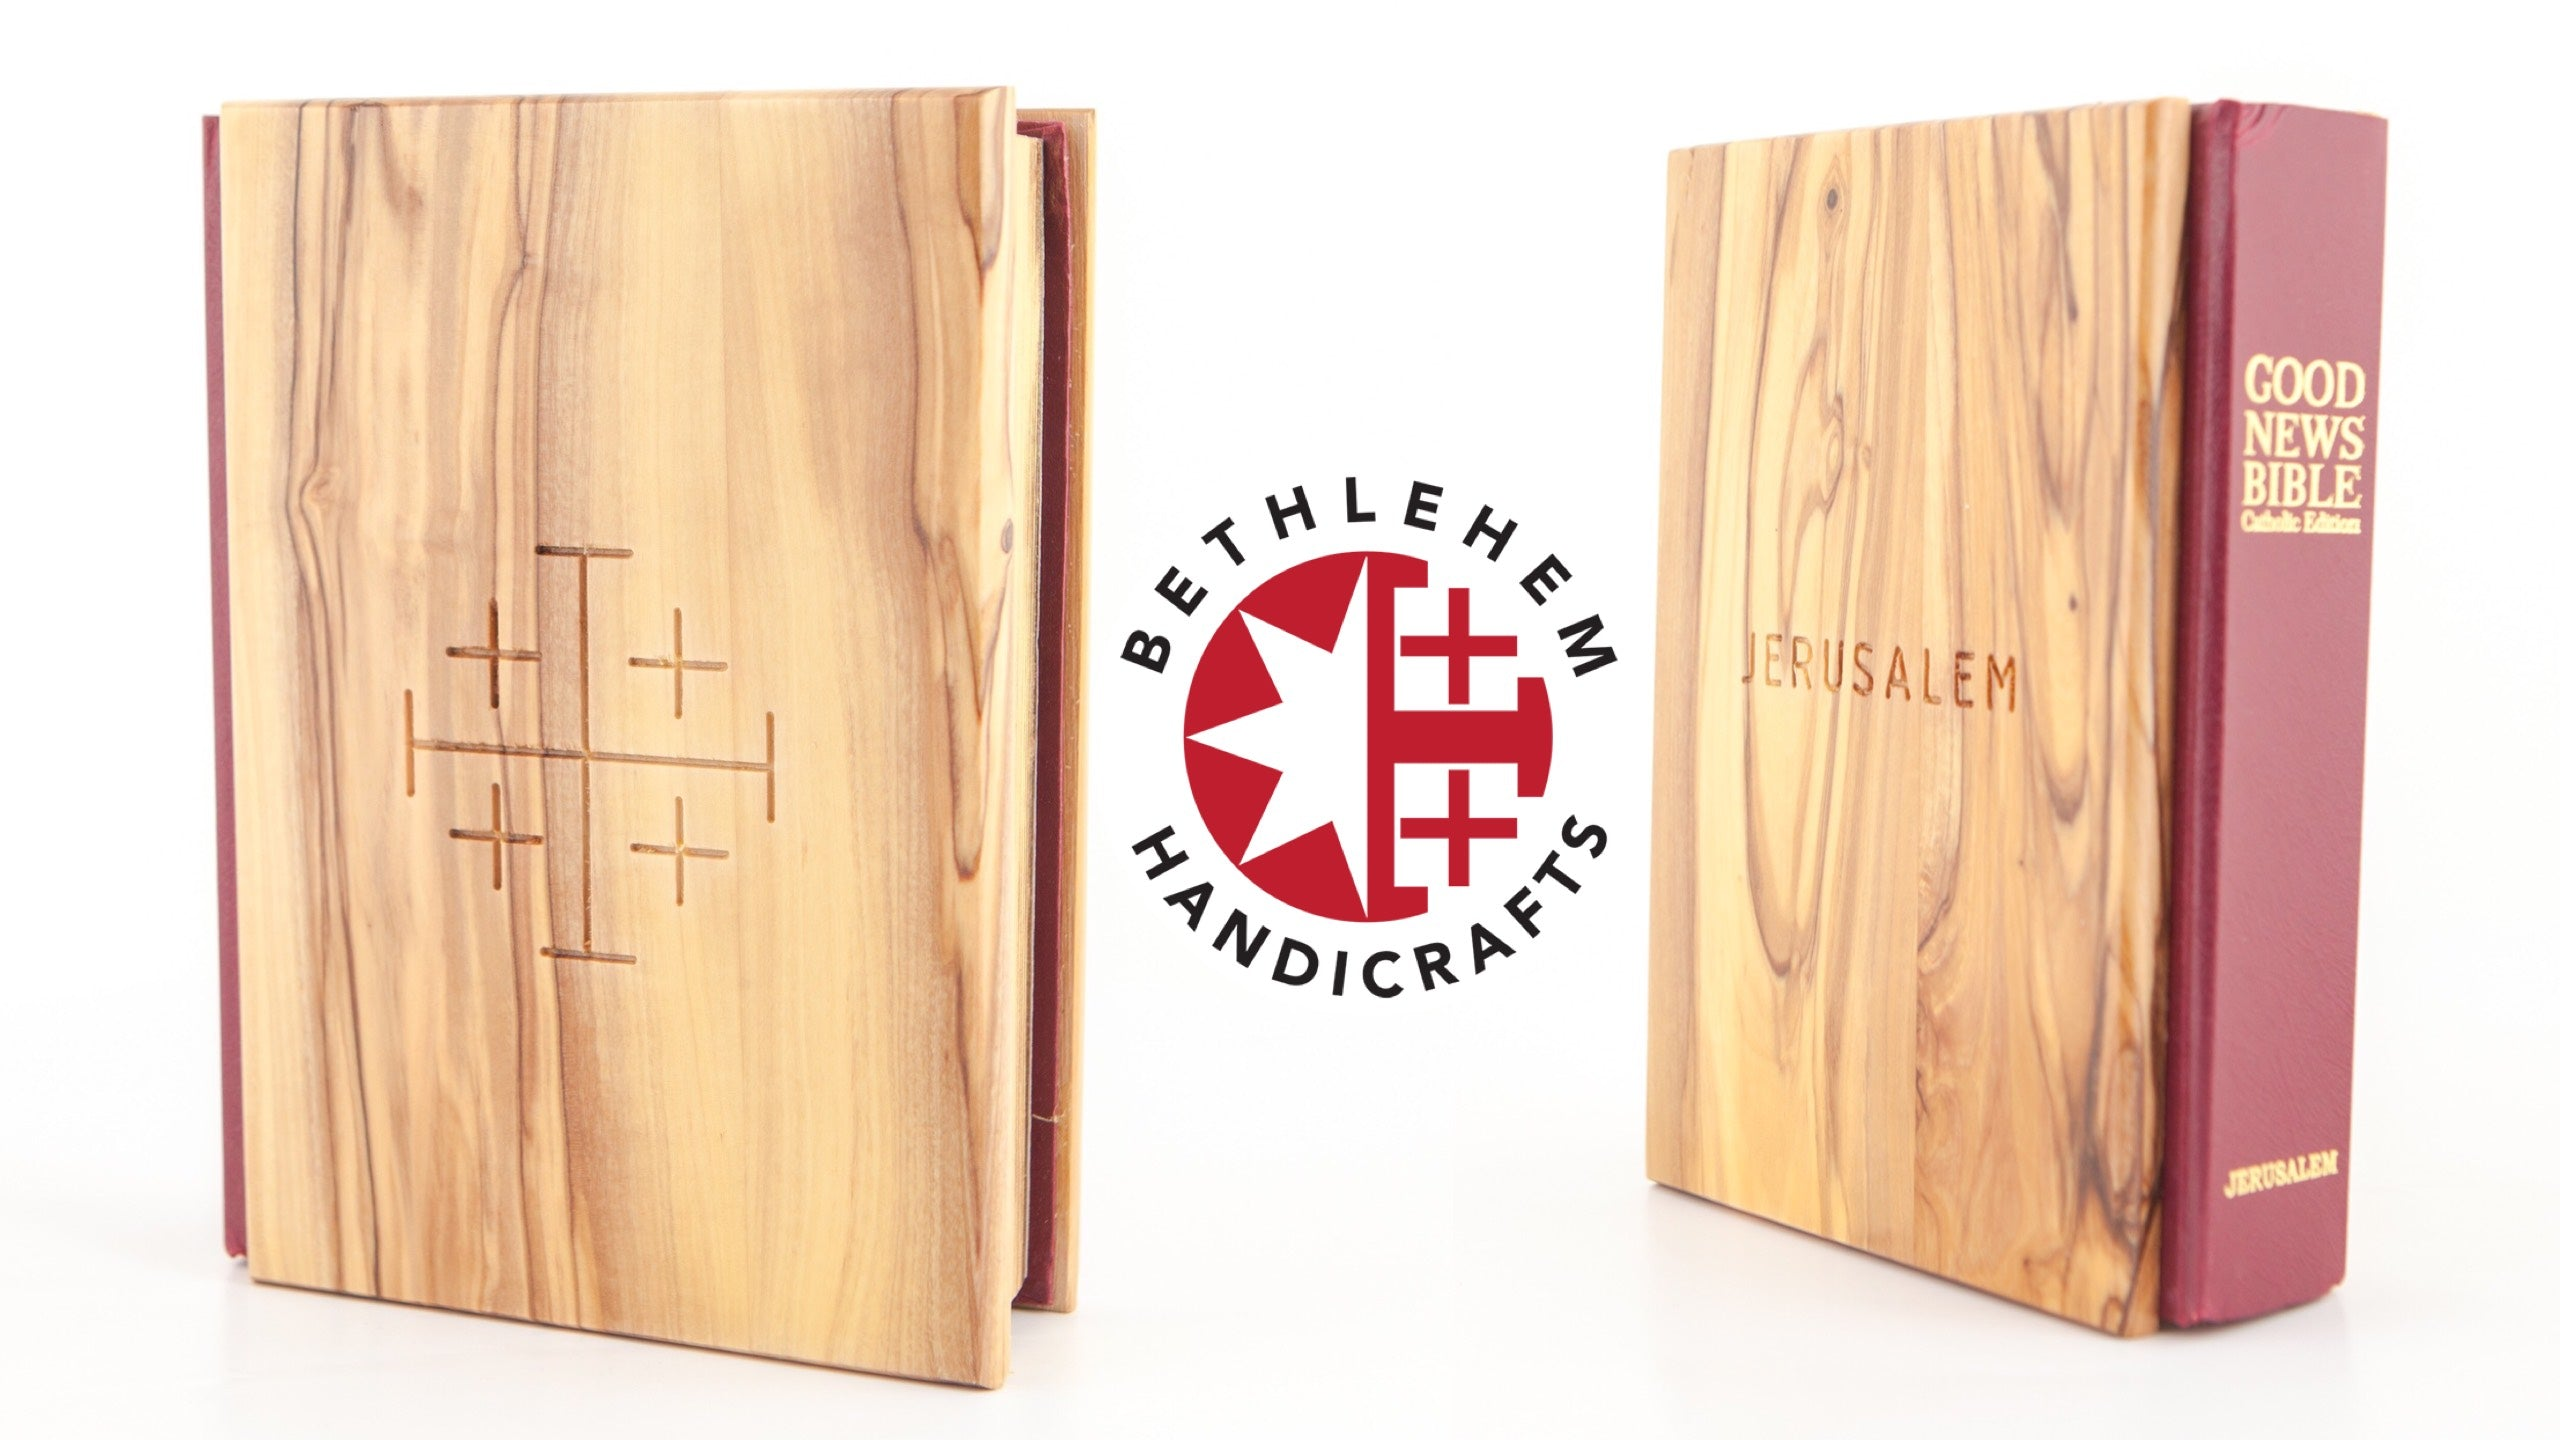 The English Bible With A Wooden Cover